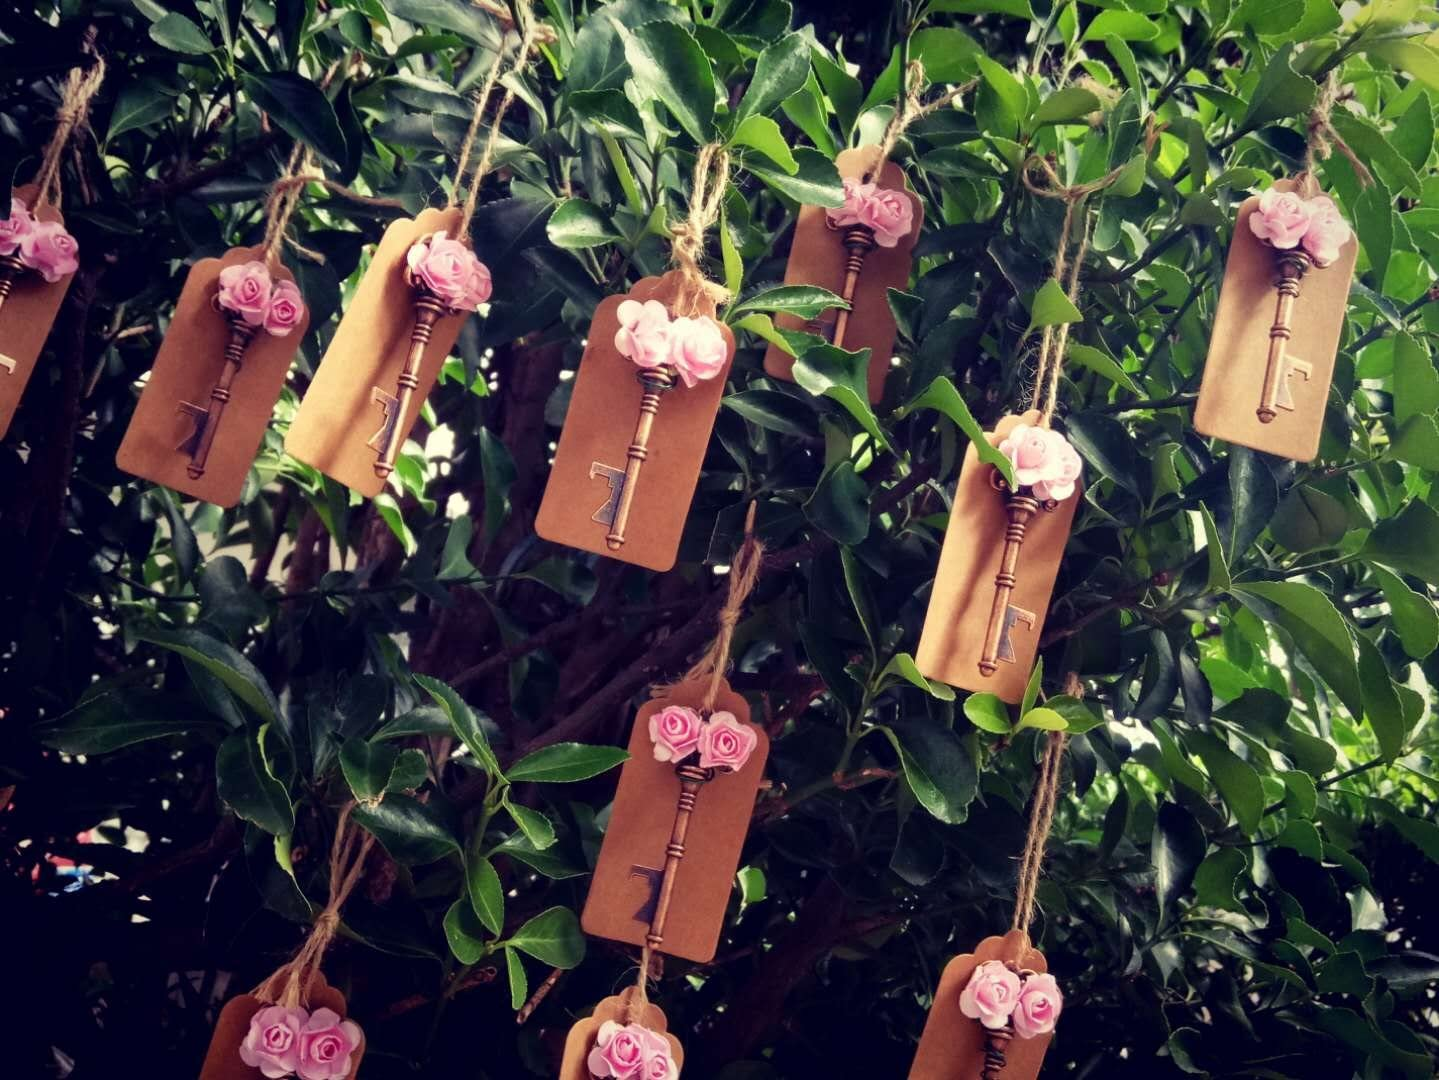 Gold pink Wedding Favors Bottle Opener Wedding Favors for Guests Roses and Twine 50 Pcs Rustic Vintage Key Bottle Opener with Escort Card Tag